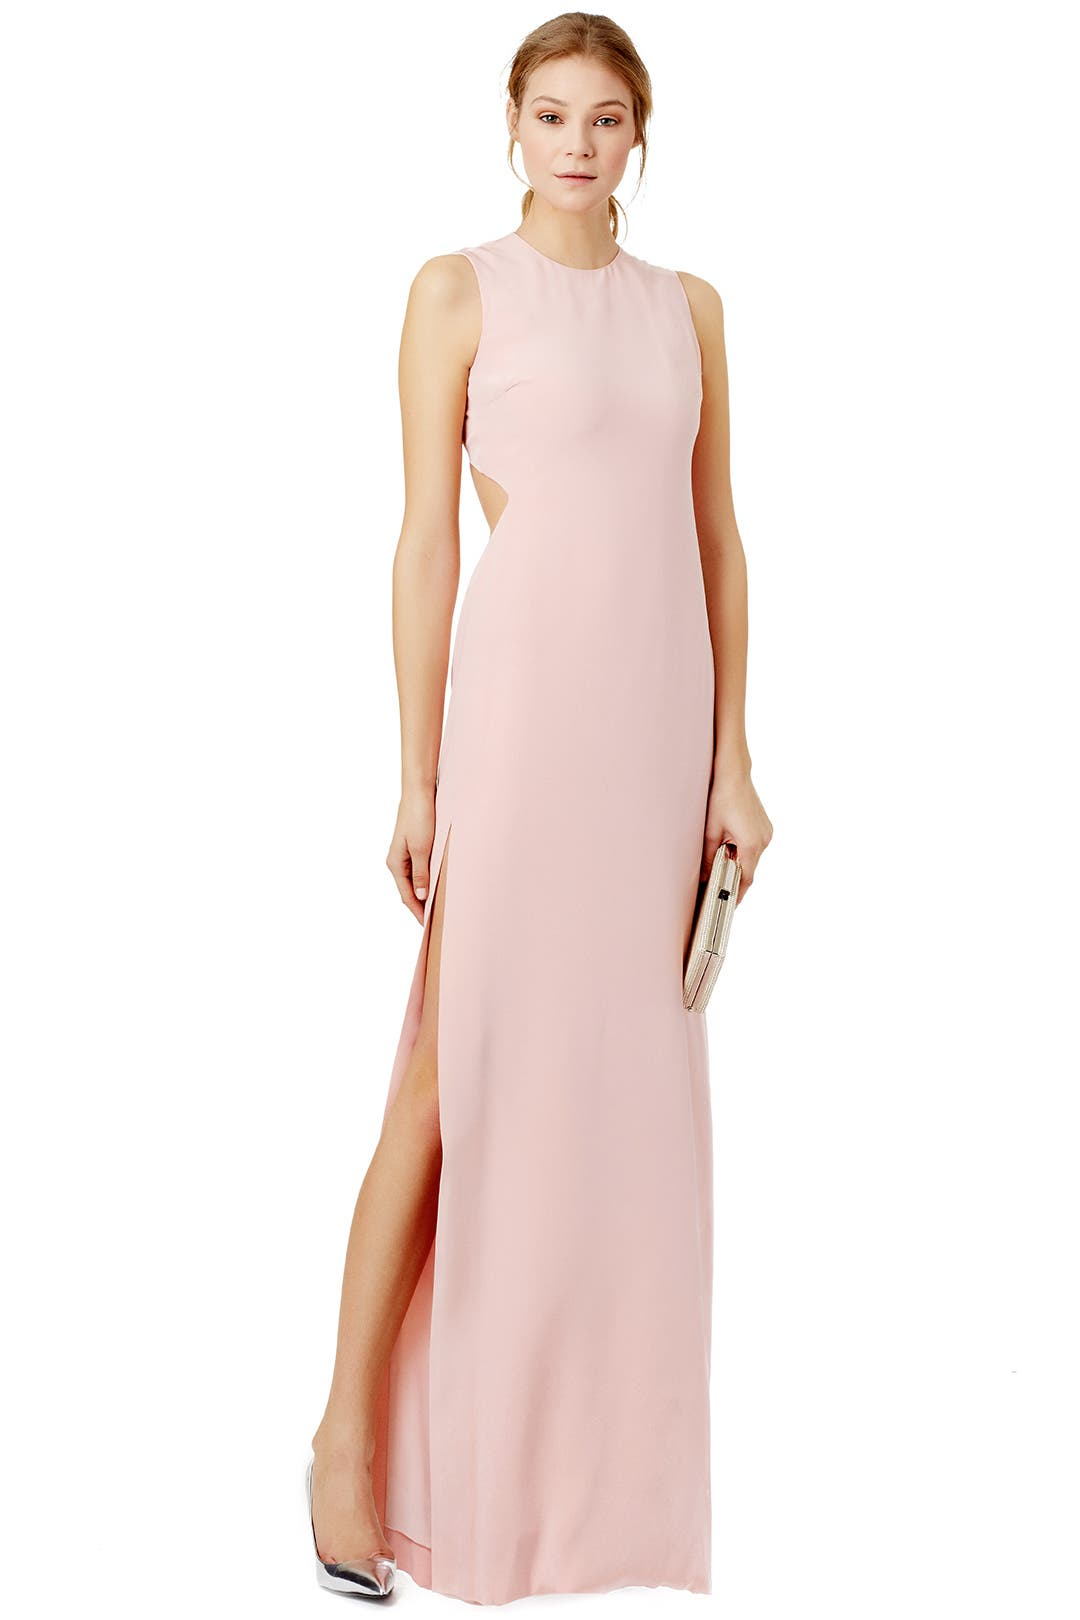 Parisienne Gown by Halston Heritage for $100 | Rent the Runway